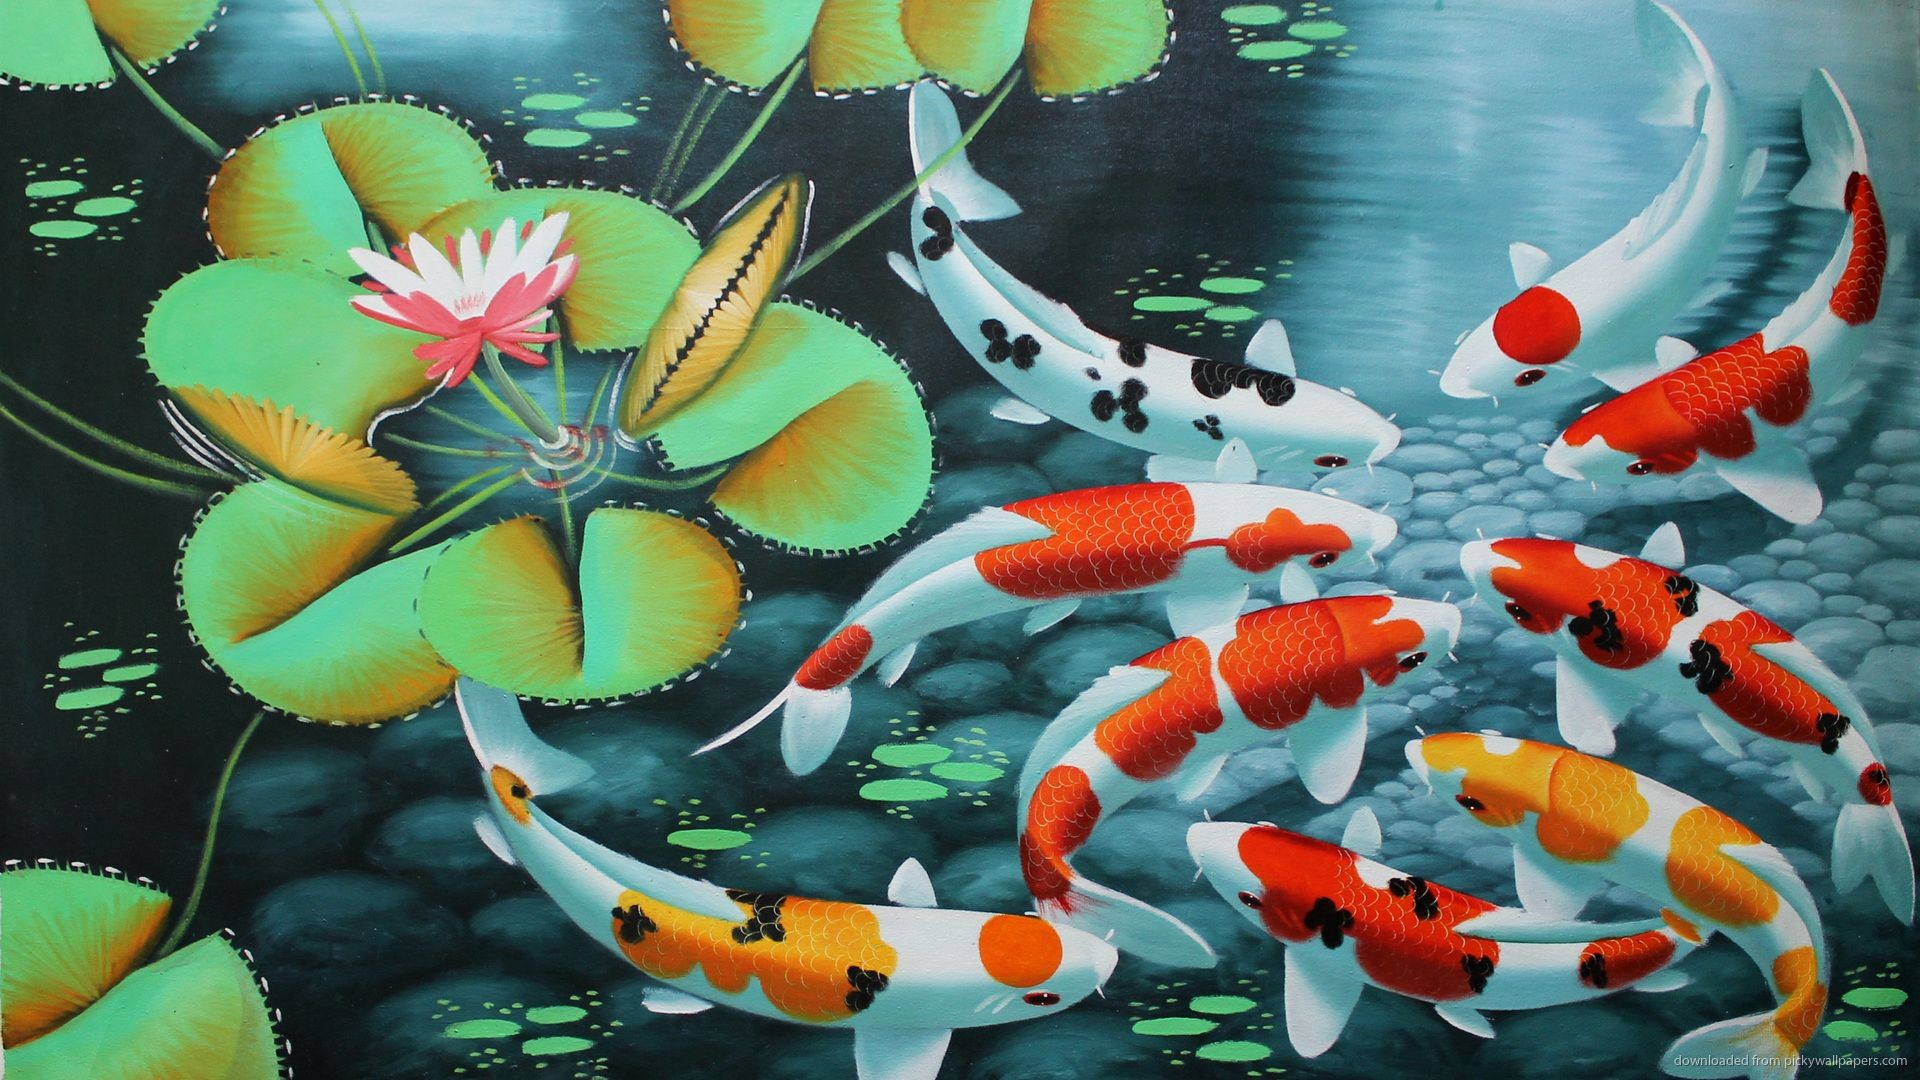 3000x1880 Koi Wallpaper, koi carp, fishes wallpaper, asian wallpaper, asian decor, Koi Fish Wall, japanese wallpaper, Koi Fish Wallpaper, japan carp